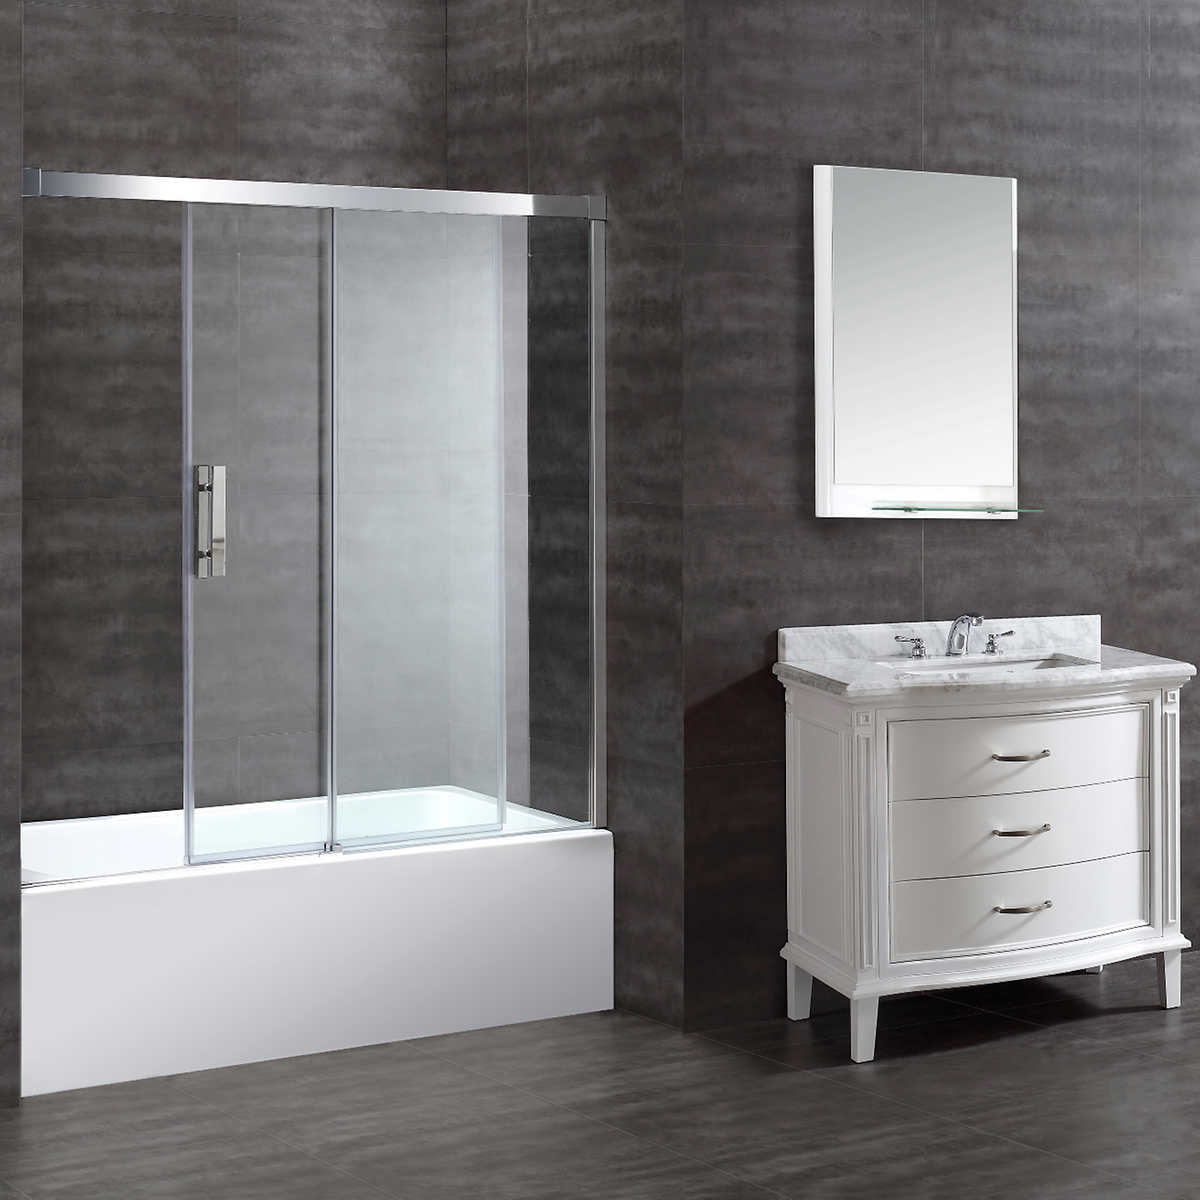 Access Tubs Walk-in Jetted Tub